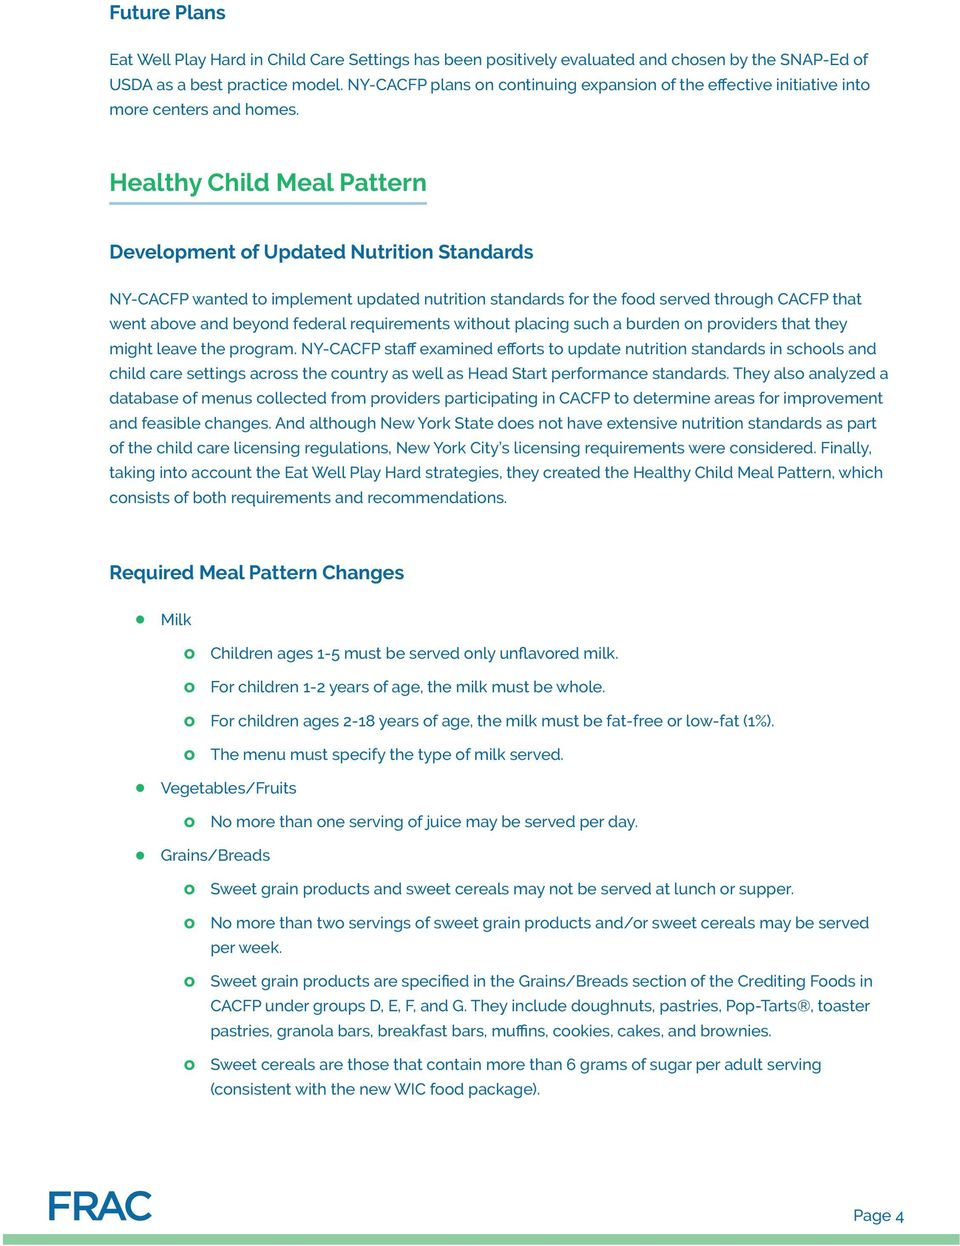 Healthy Child Meal Pattern Development of Updated Nutrition Standards NY-CACFP wanted to implement updated nutrition standards for the fd served through CACFP that went above and beyond federal